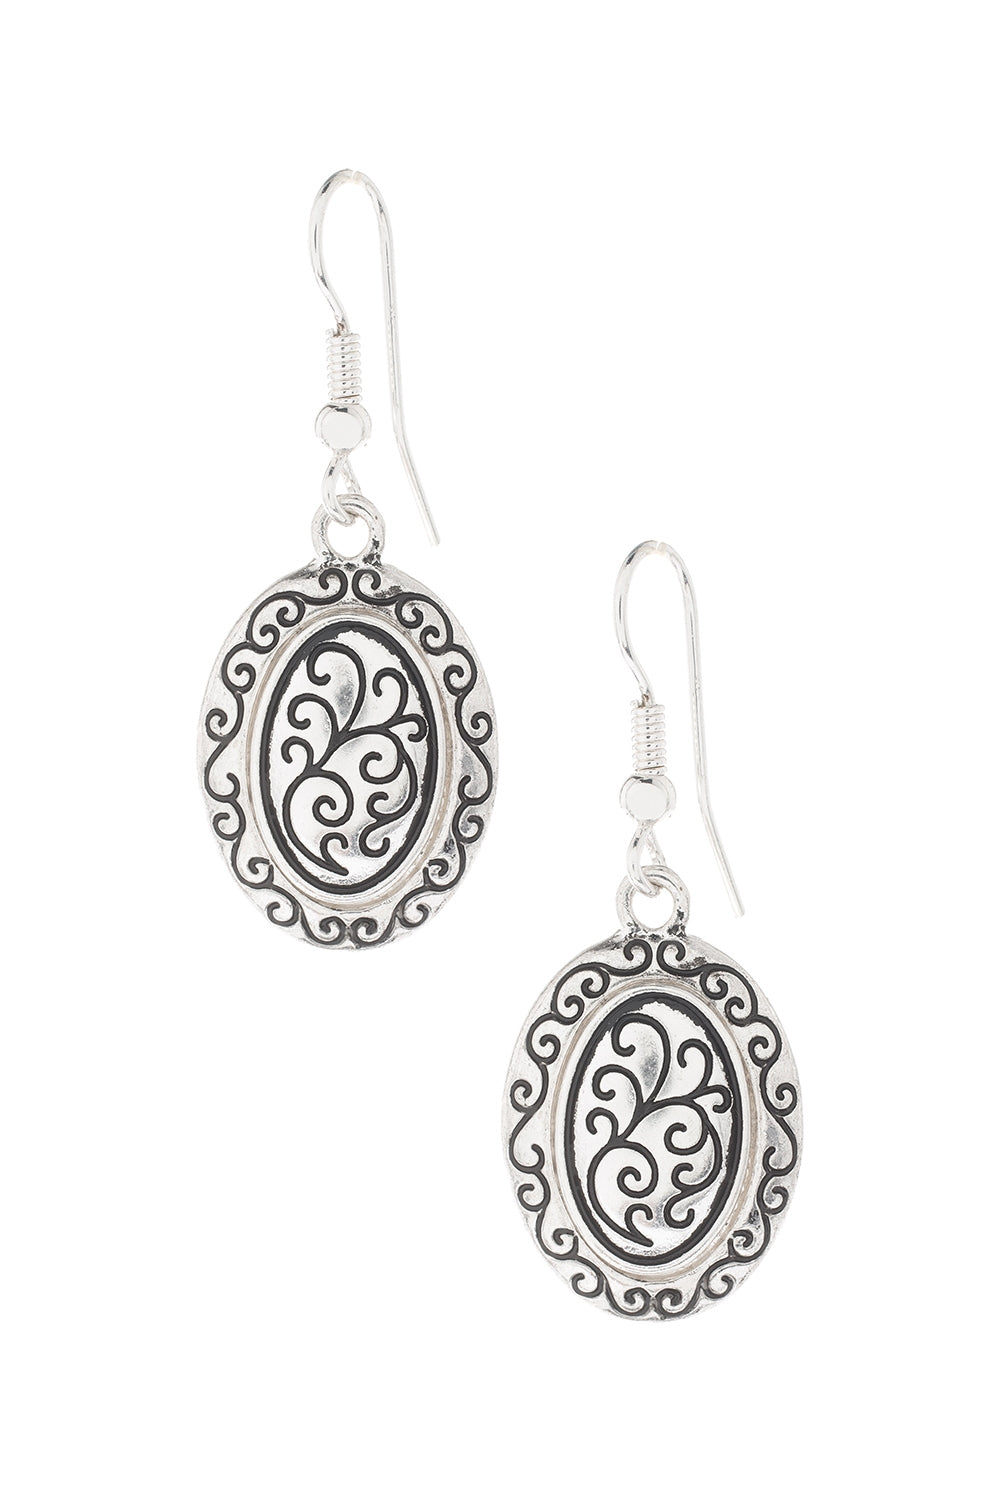 Type 2 Pretty Classic Earrings